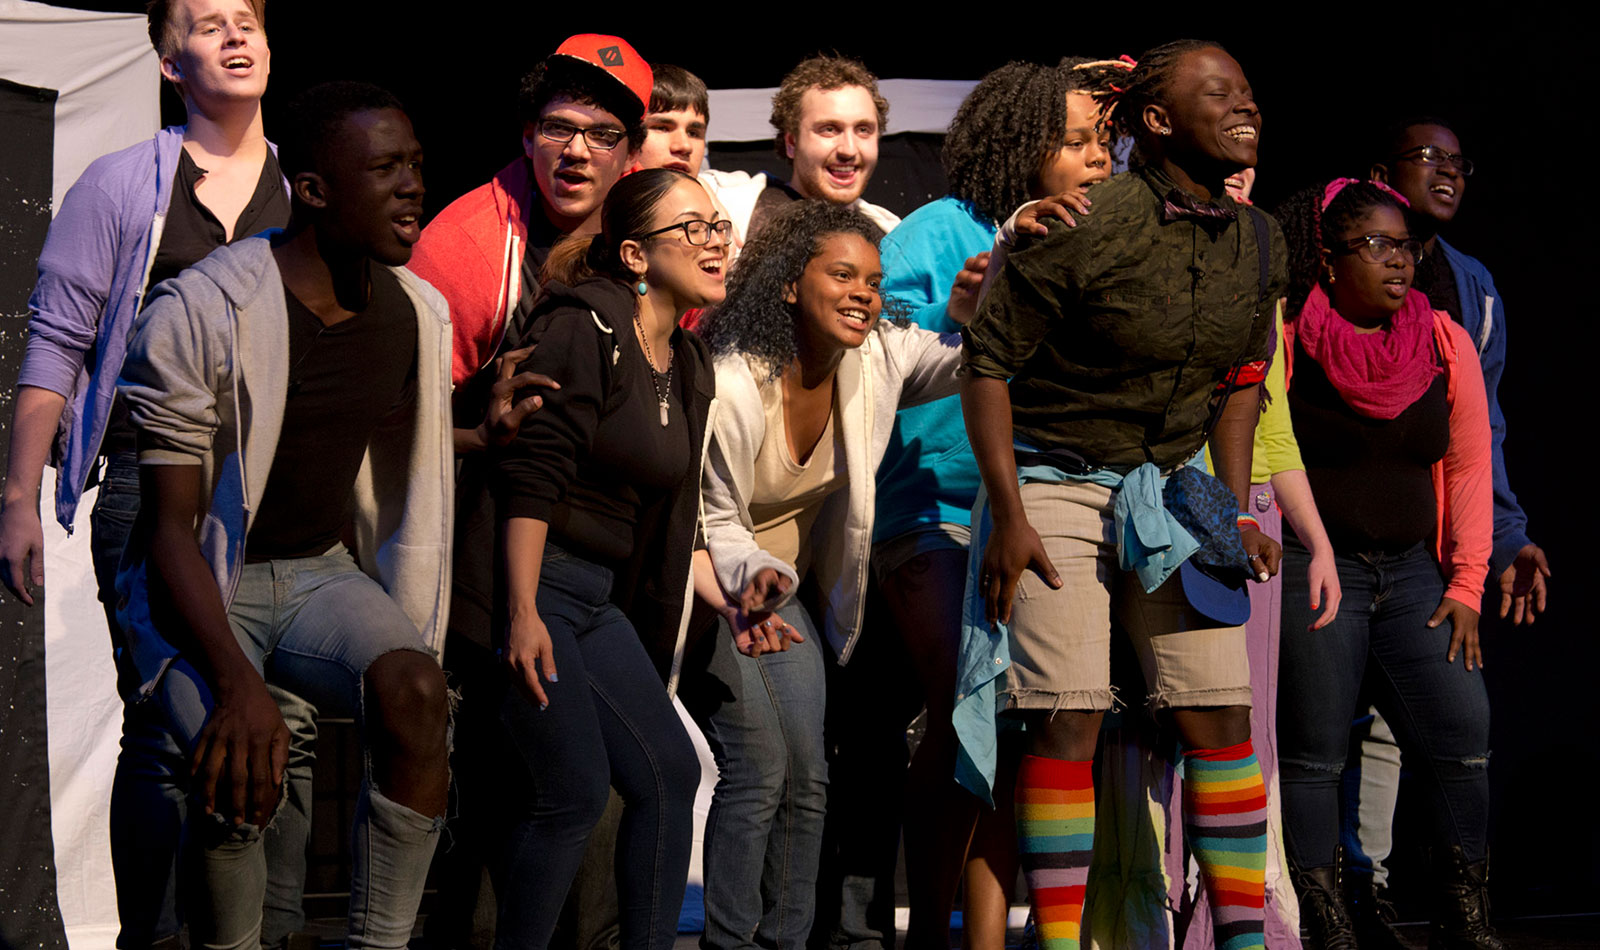 Culture empowers a new creative generation. - We want to ensure that culture plays a major role in developing creative, productive, and independent-minded young people in Massachusetts.Photo credit: The Theater Offensive, Boston